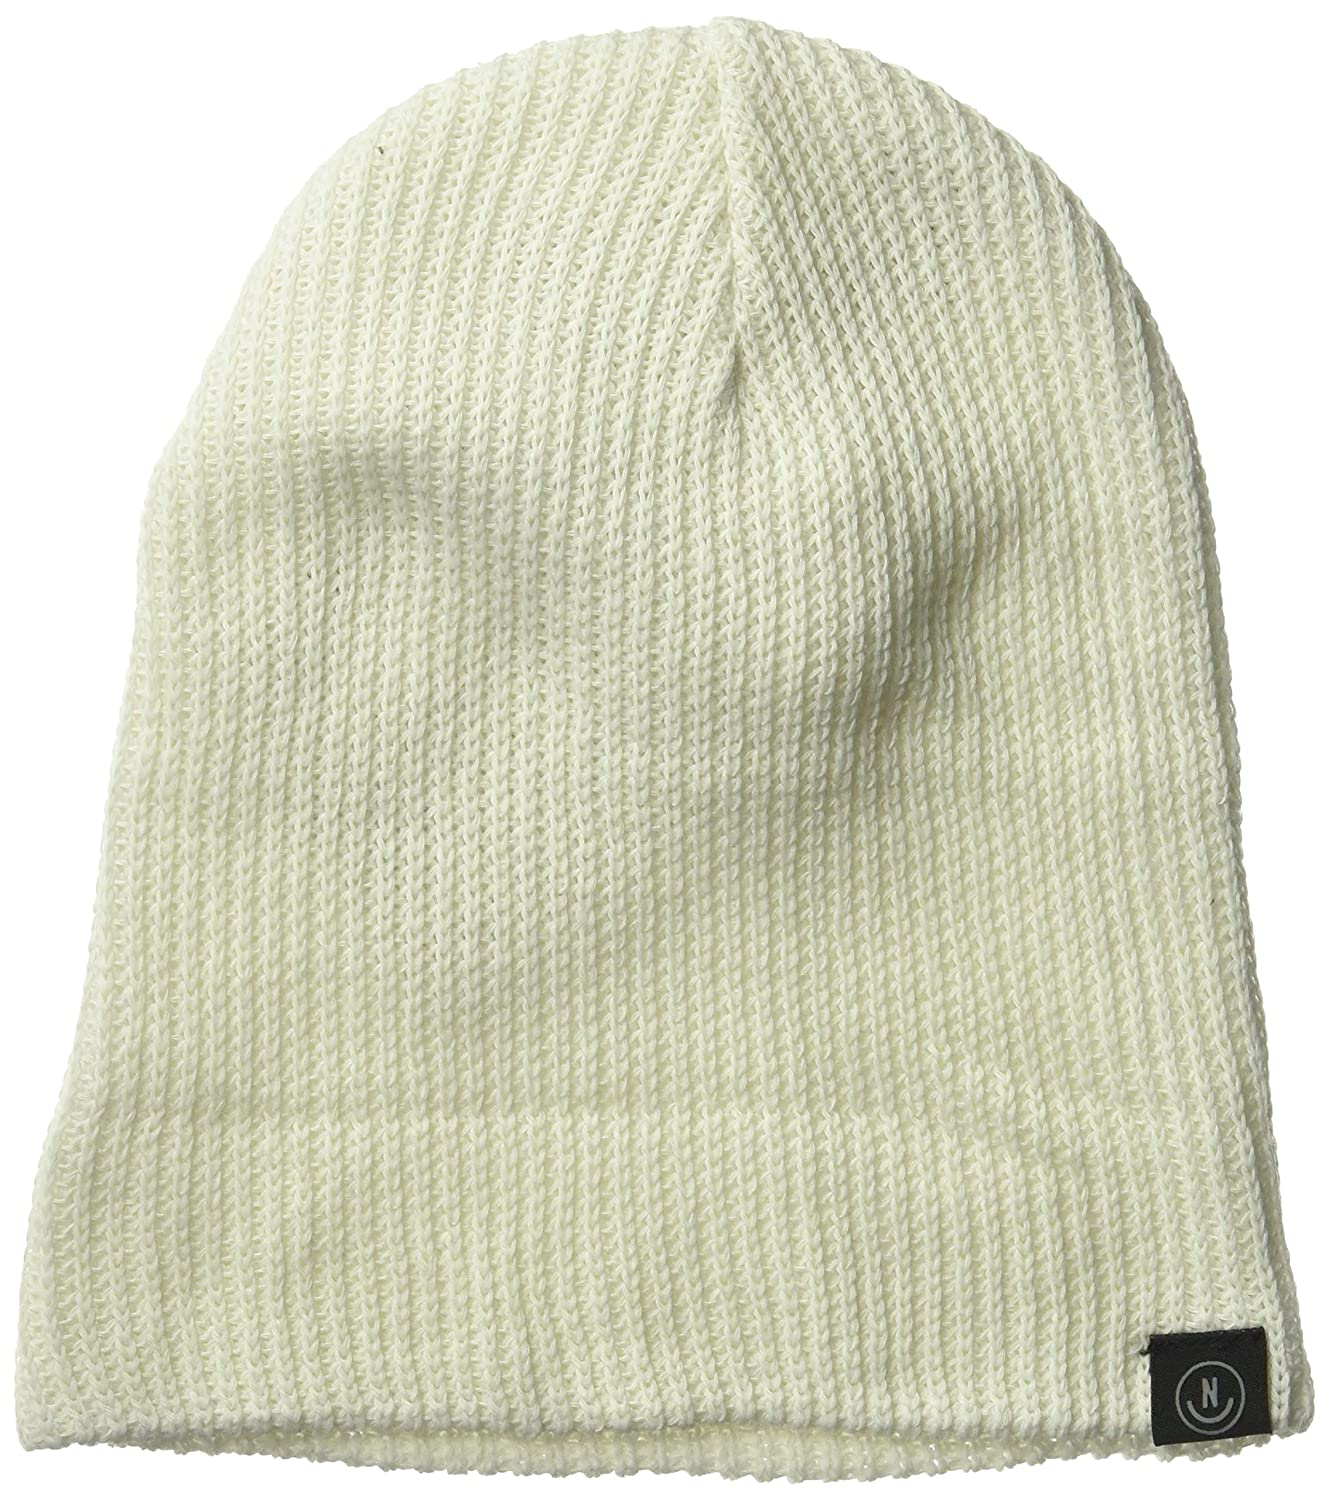 NEFF Mens Nightly Serge Beanie, Glow, One Size: Amazon.es: Ropa y ...